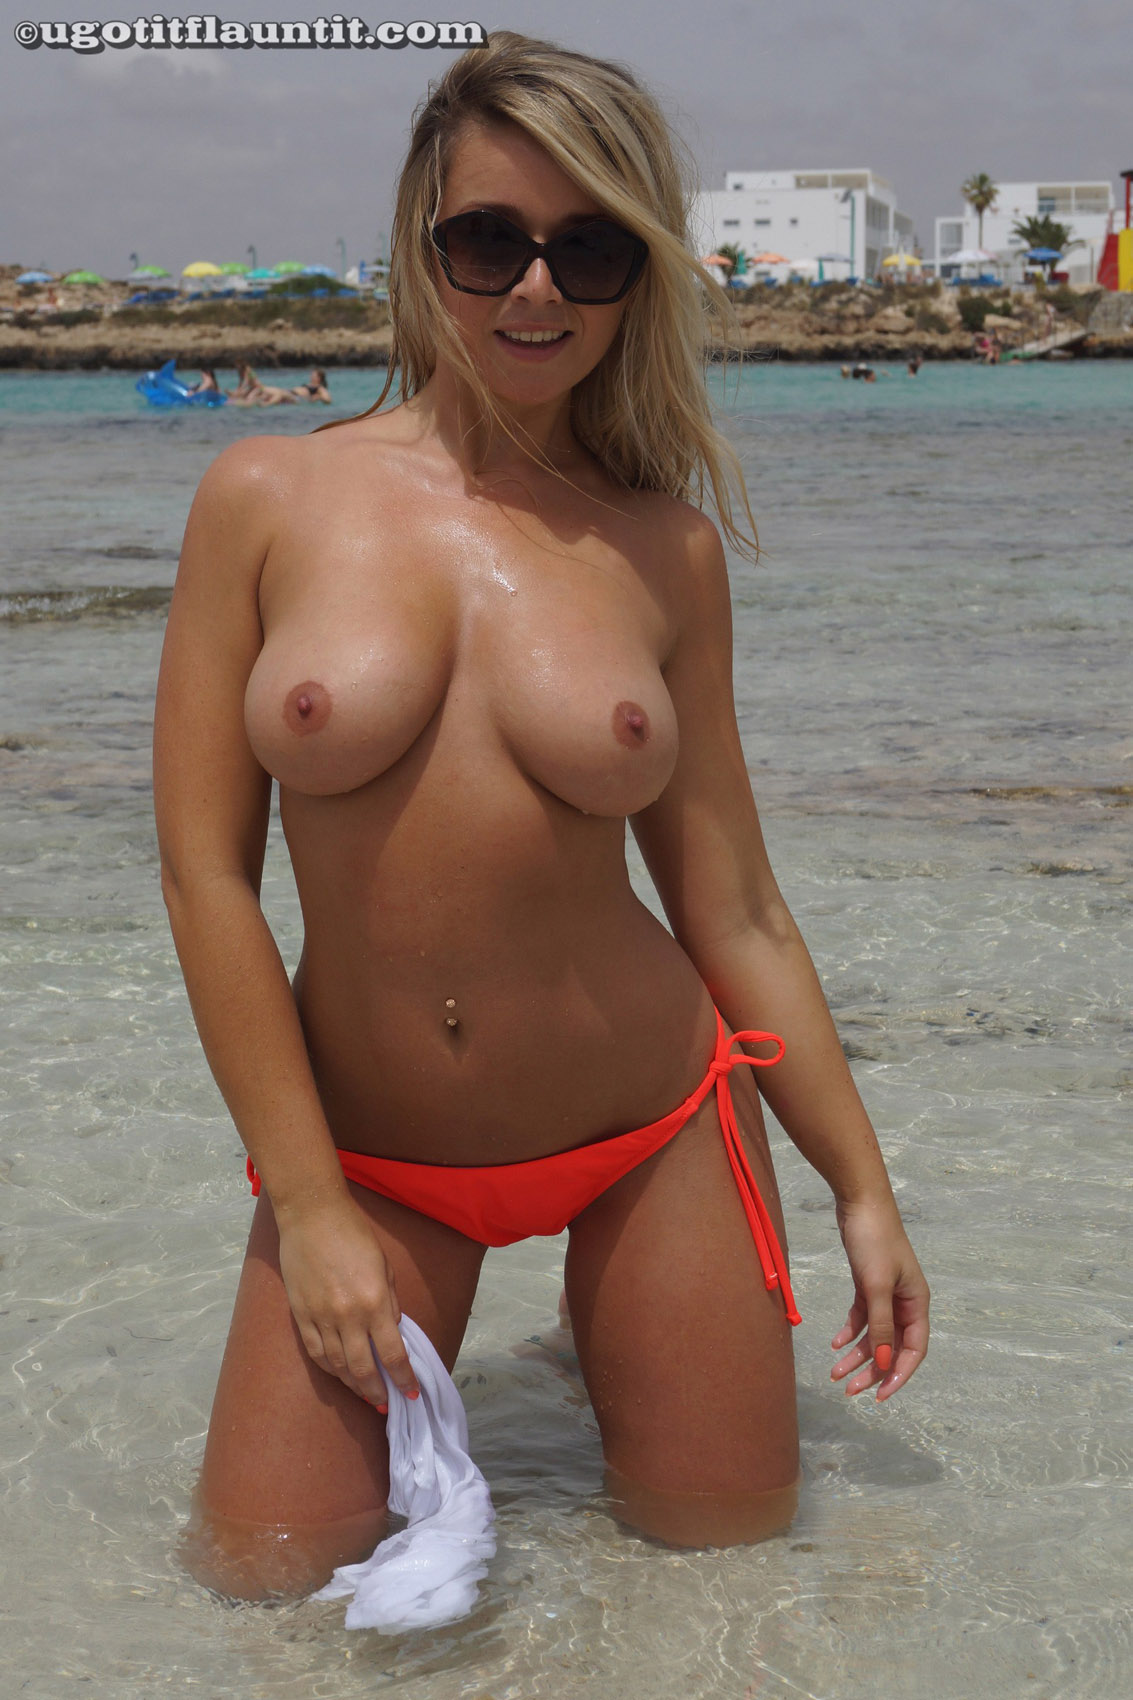 Thanks for Melissa nude beach manage